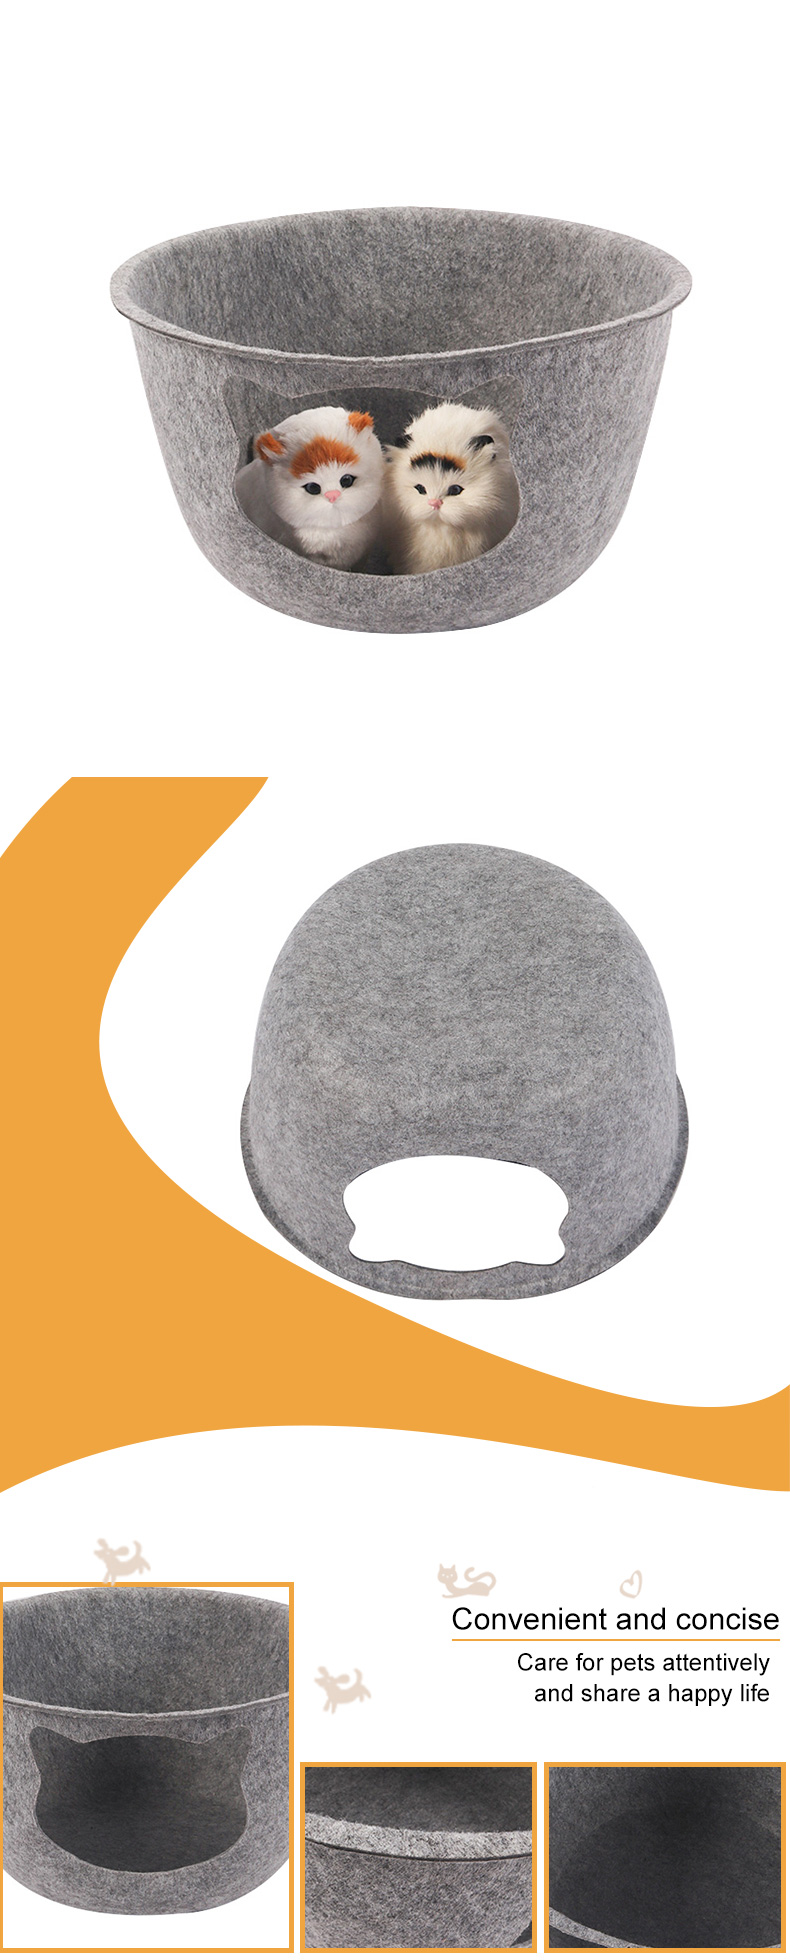 Cat nest in the shape of a felt bowl pet product